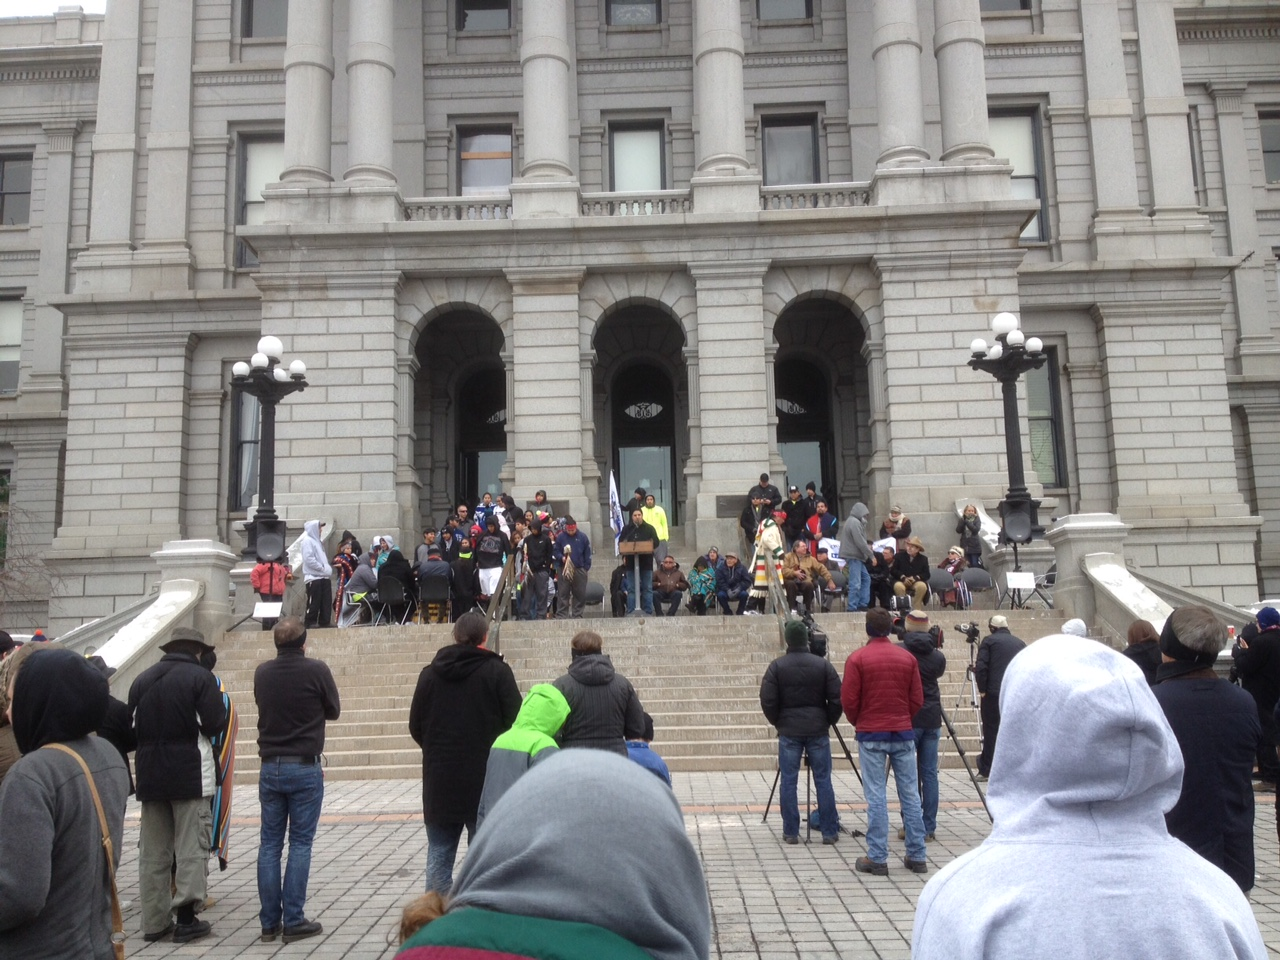 Cheyenne and Arapaho tribal leaders and memorial runners joined state representatives on the steps of the state capitol on Nov. 29 to remember the Sand Creek Massacre. (Marrton Dormish)